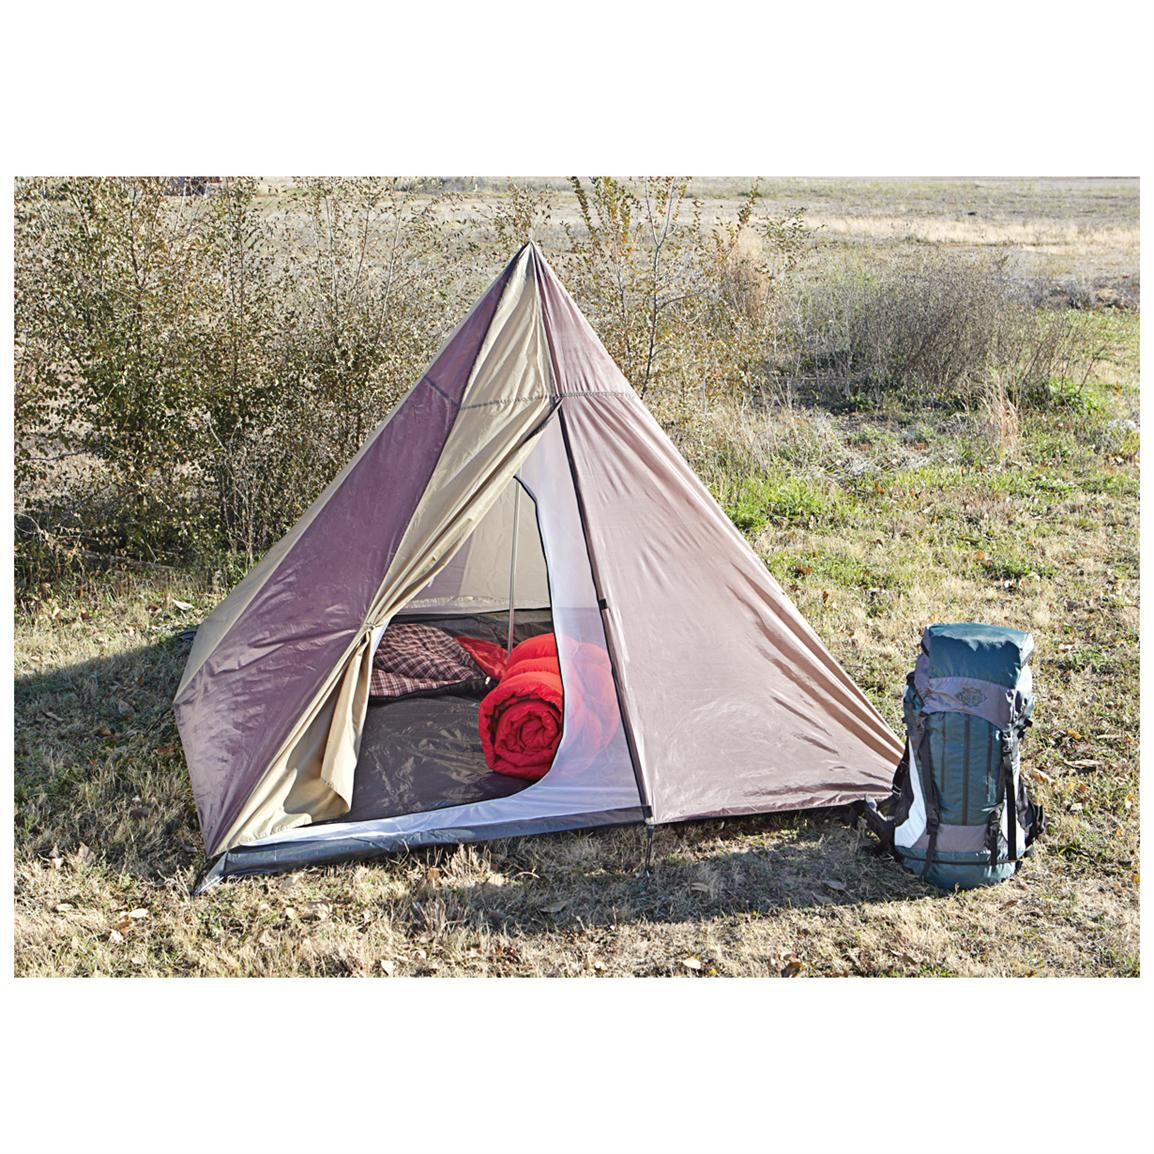 Guide Gear Backpacking Teepee Tent - 582128 Backpacking Tents at Sportsmanu0027s Guide  sc 1 st  Pinterest : tents for hiking - memphite.com